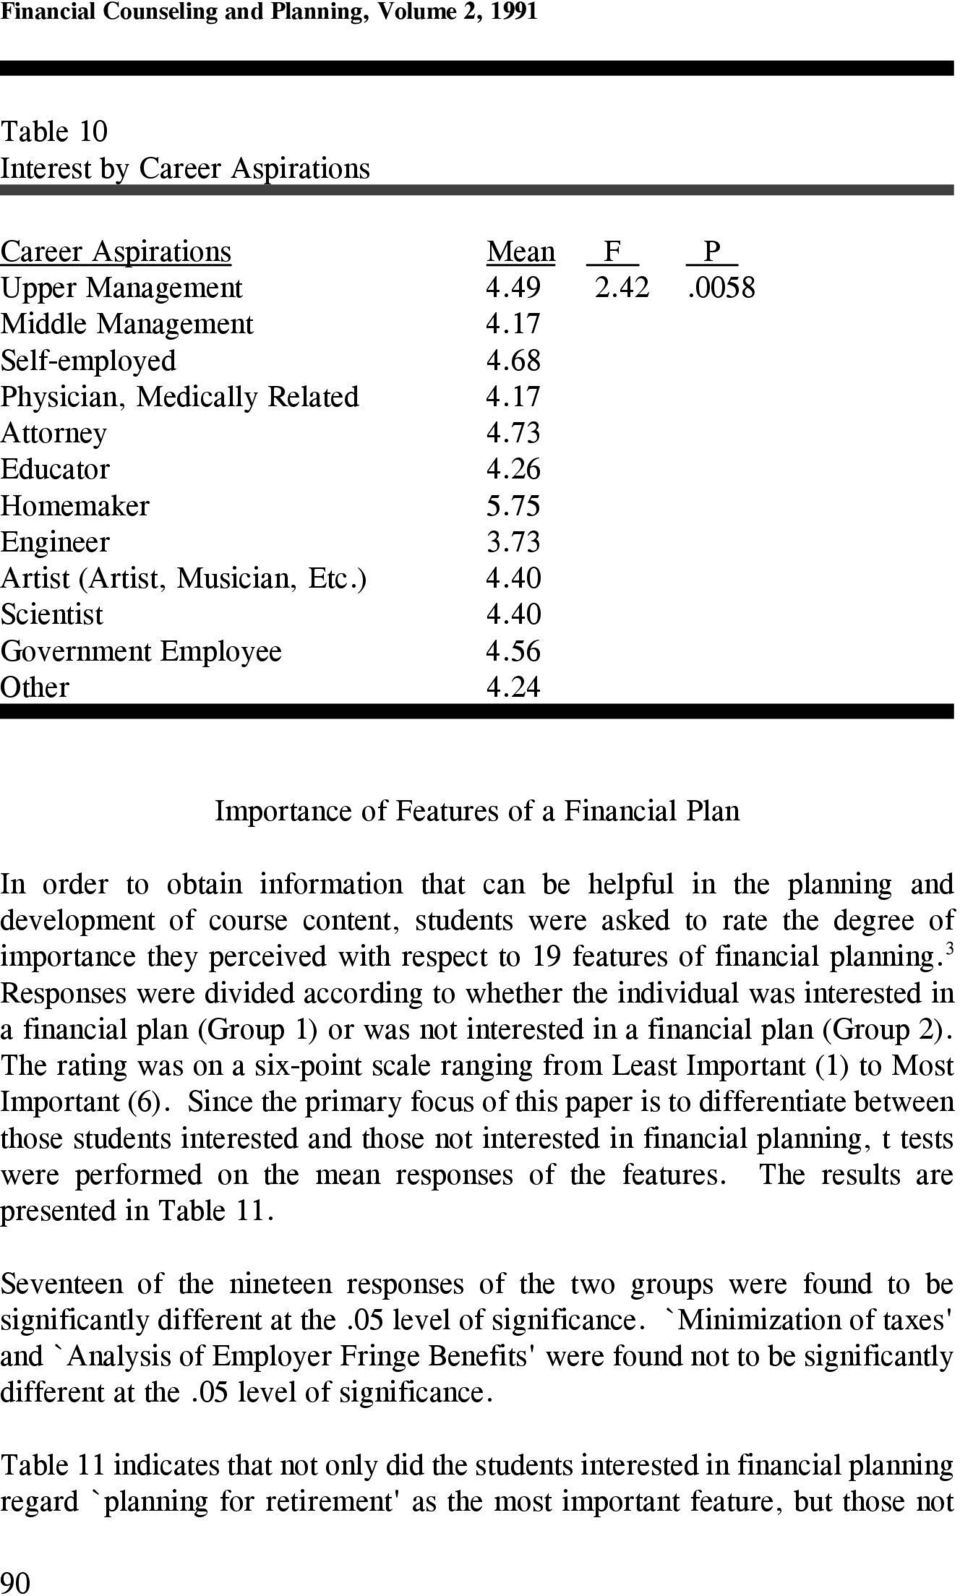 24 90 Importance of Features of a Financial Plan In order to obtain information that can be helpful in the planning and development of course content, students were asked to rate the degree of